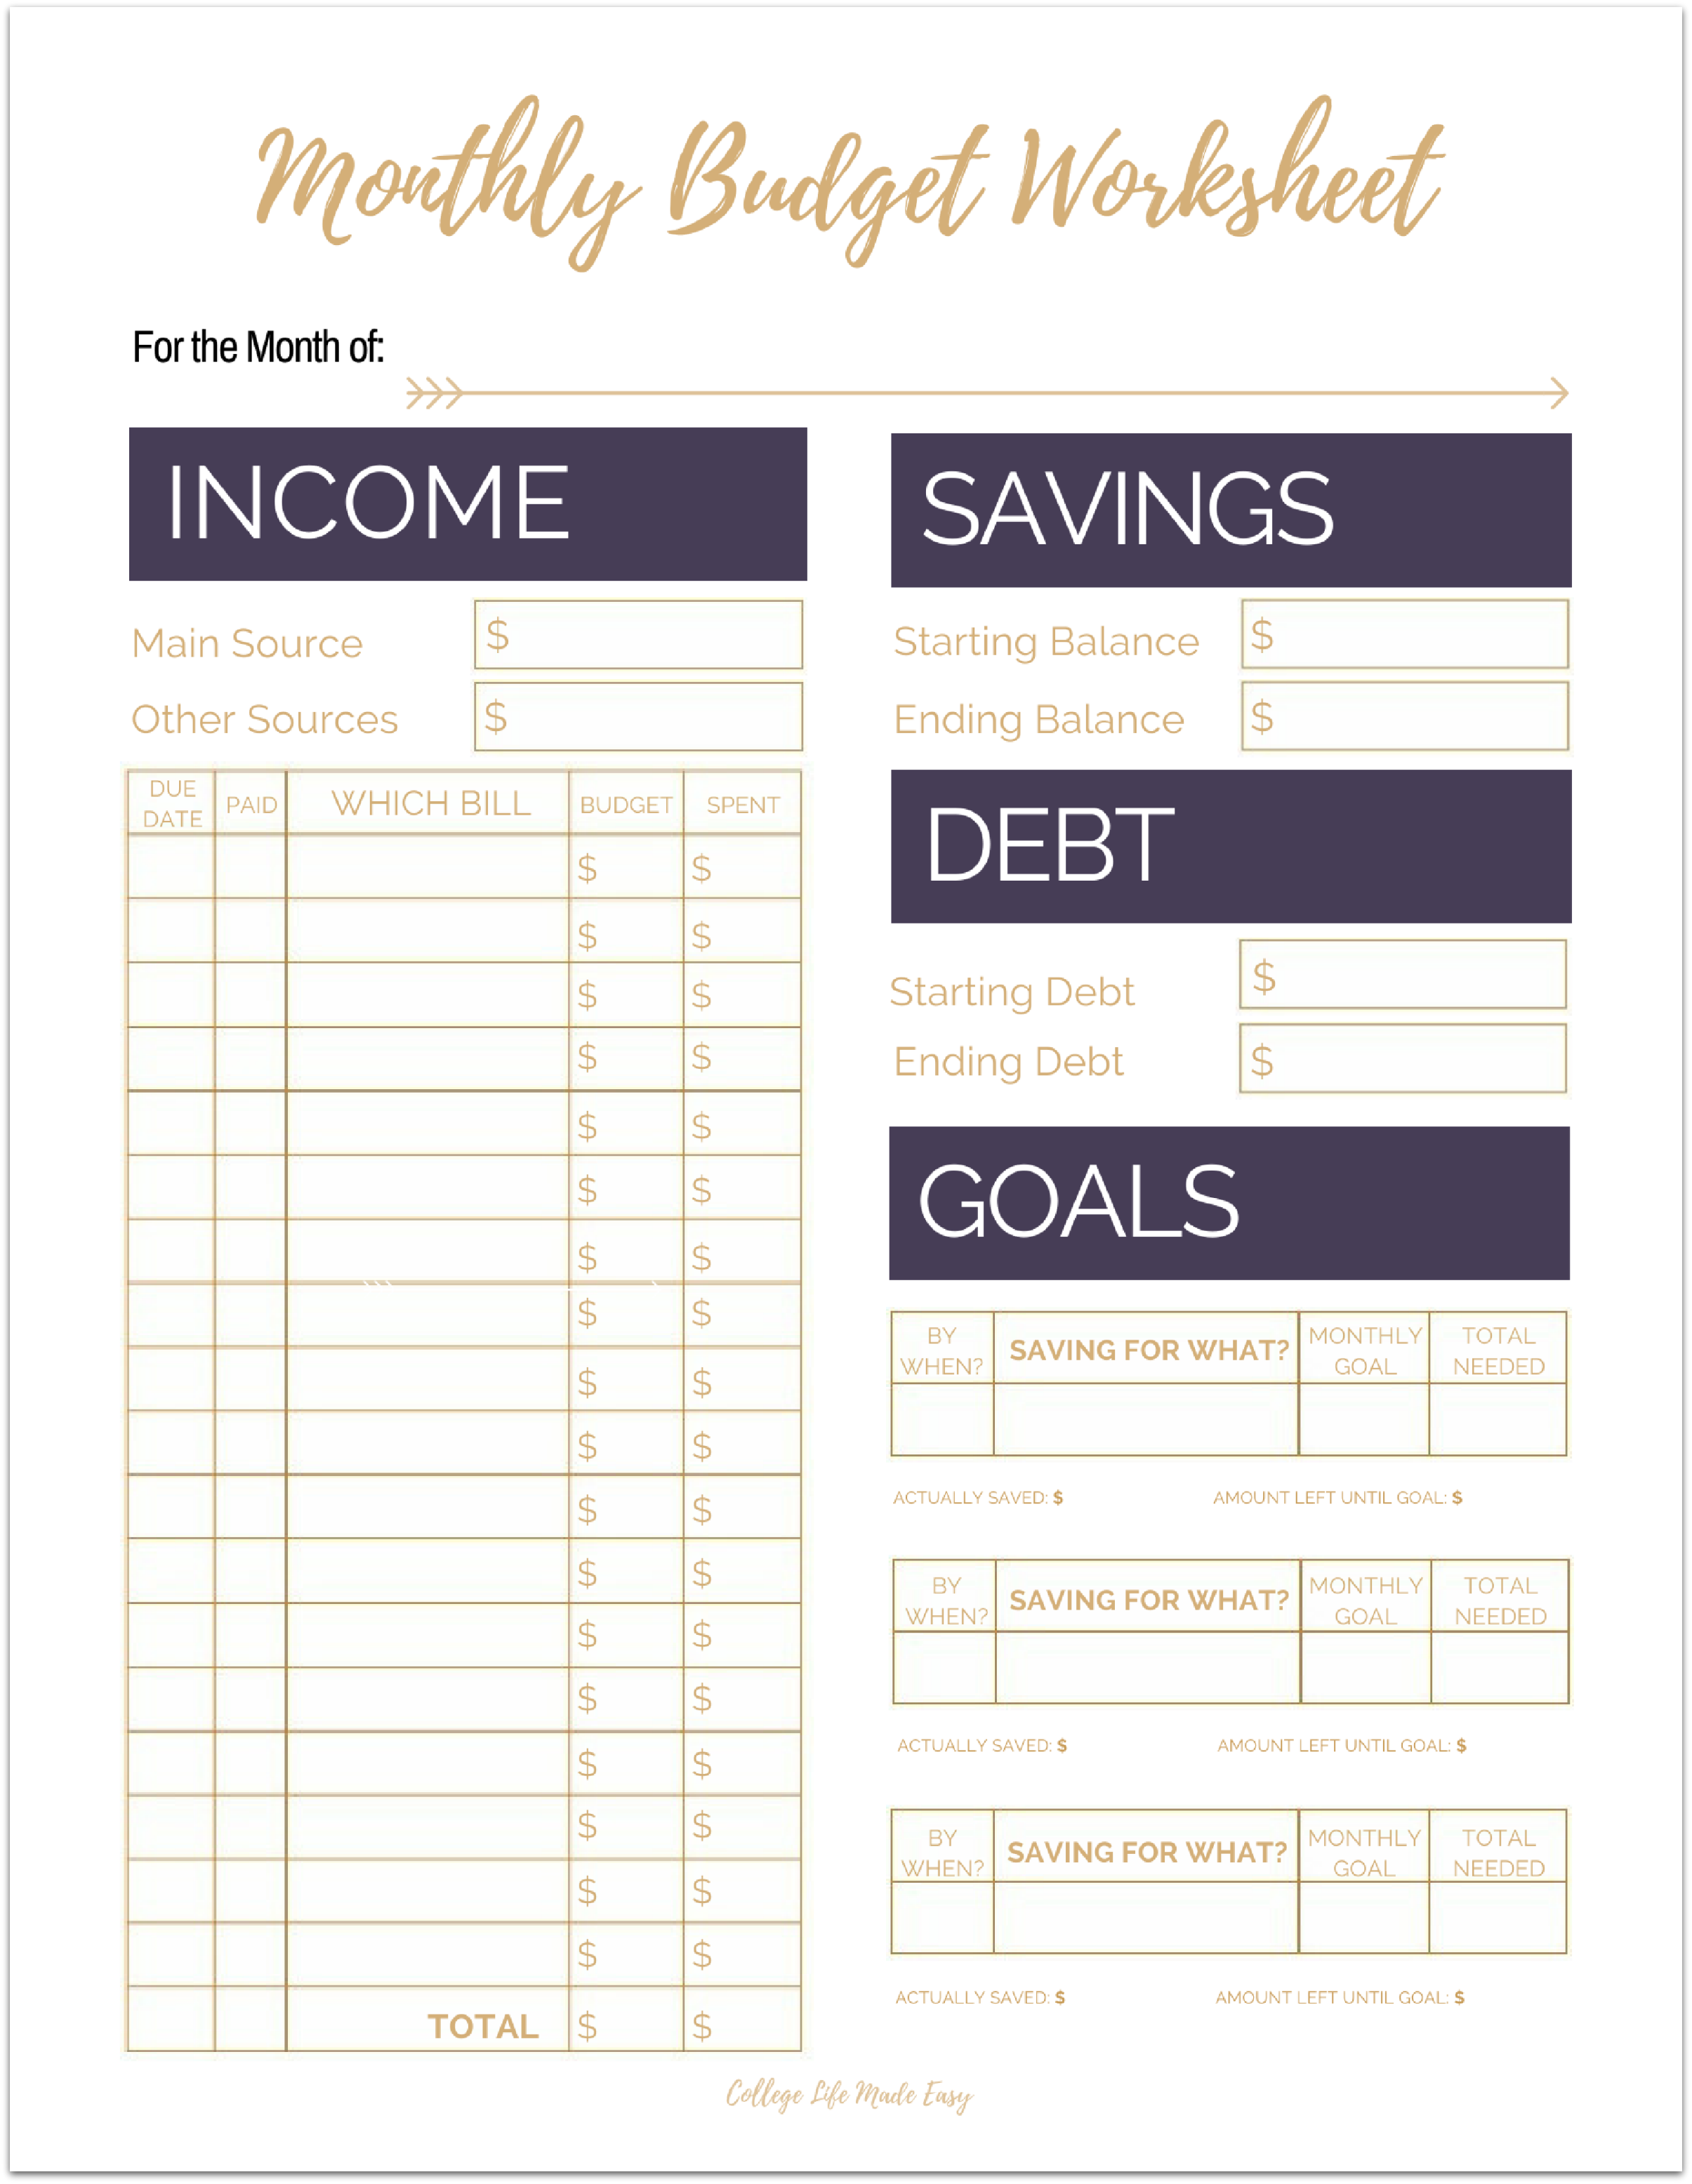 budgeting worksheet for young adults   Monza.berglauf verband.com